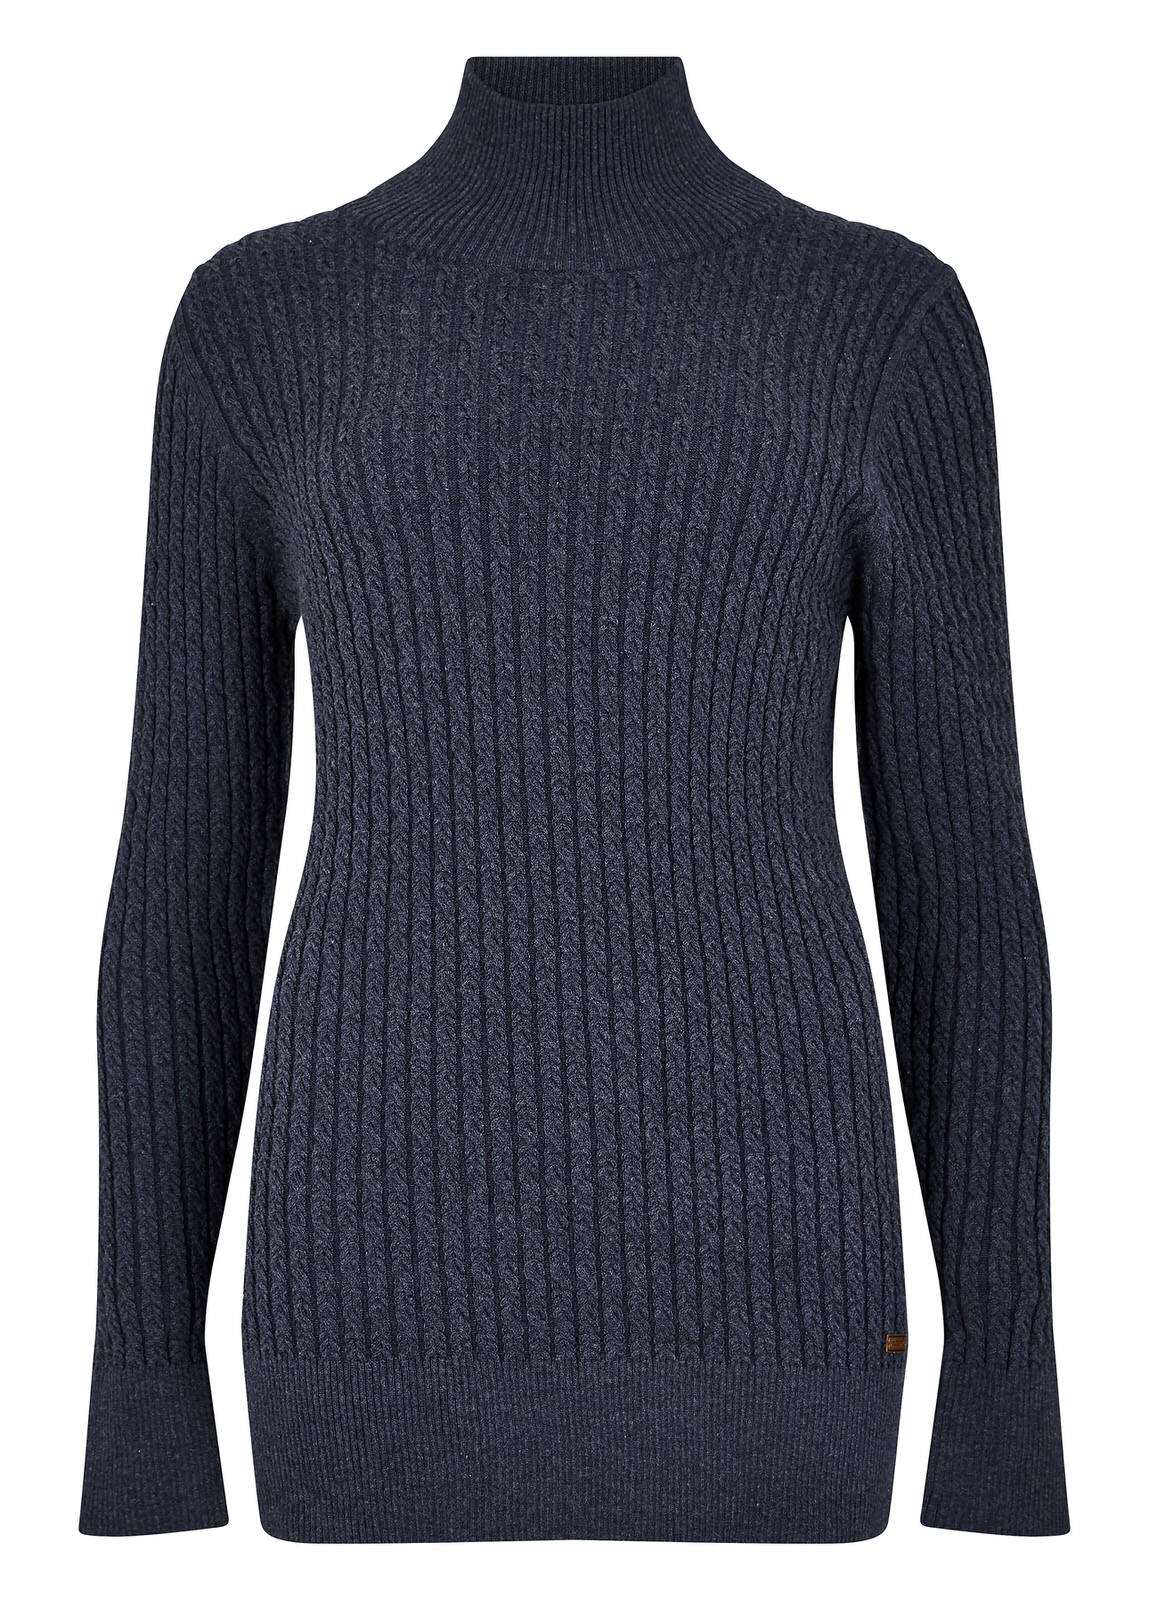 Cormack_Women's_sweater_French_Navy_Image_1